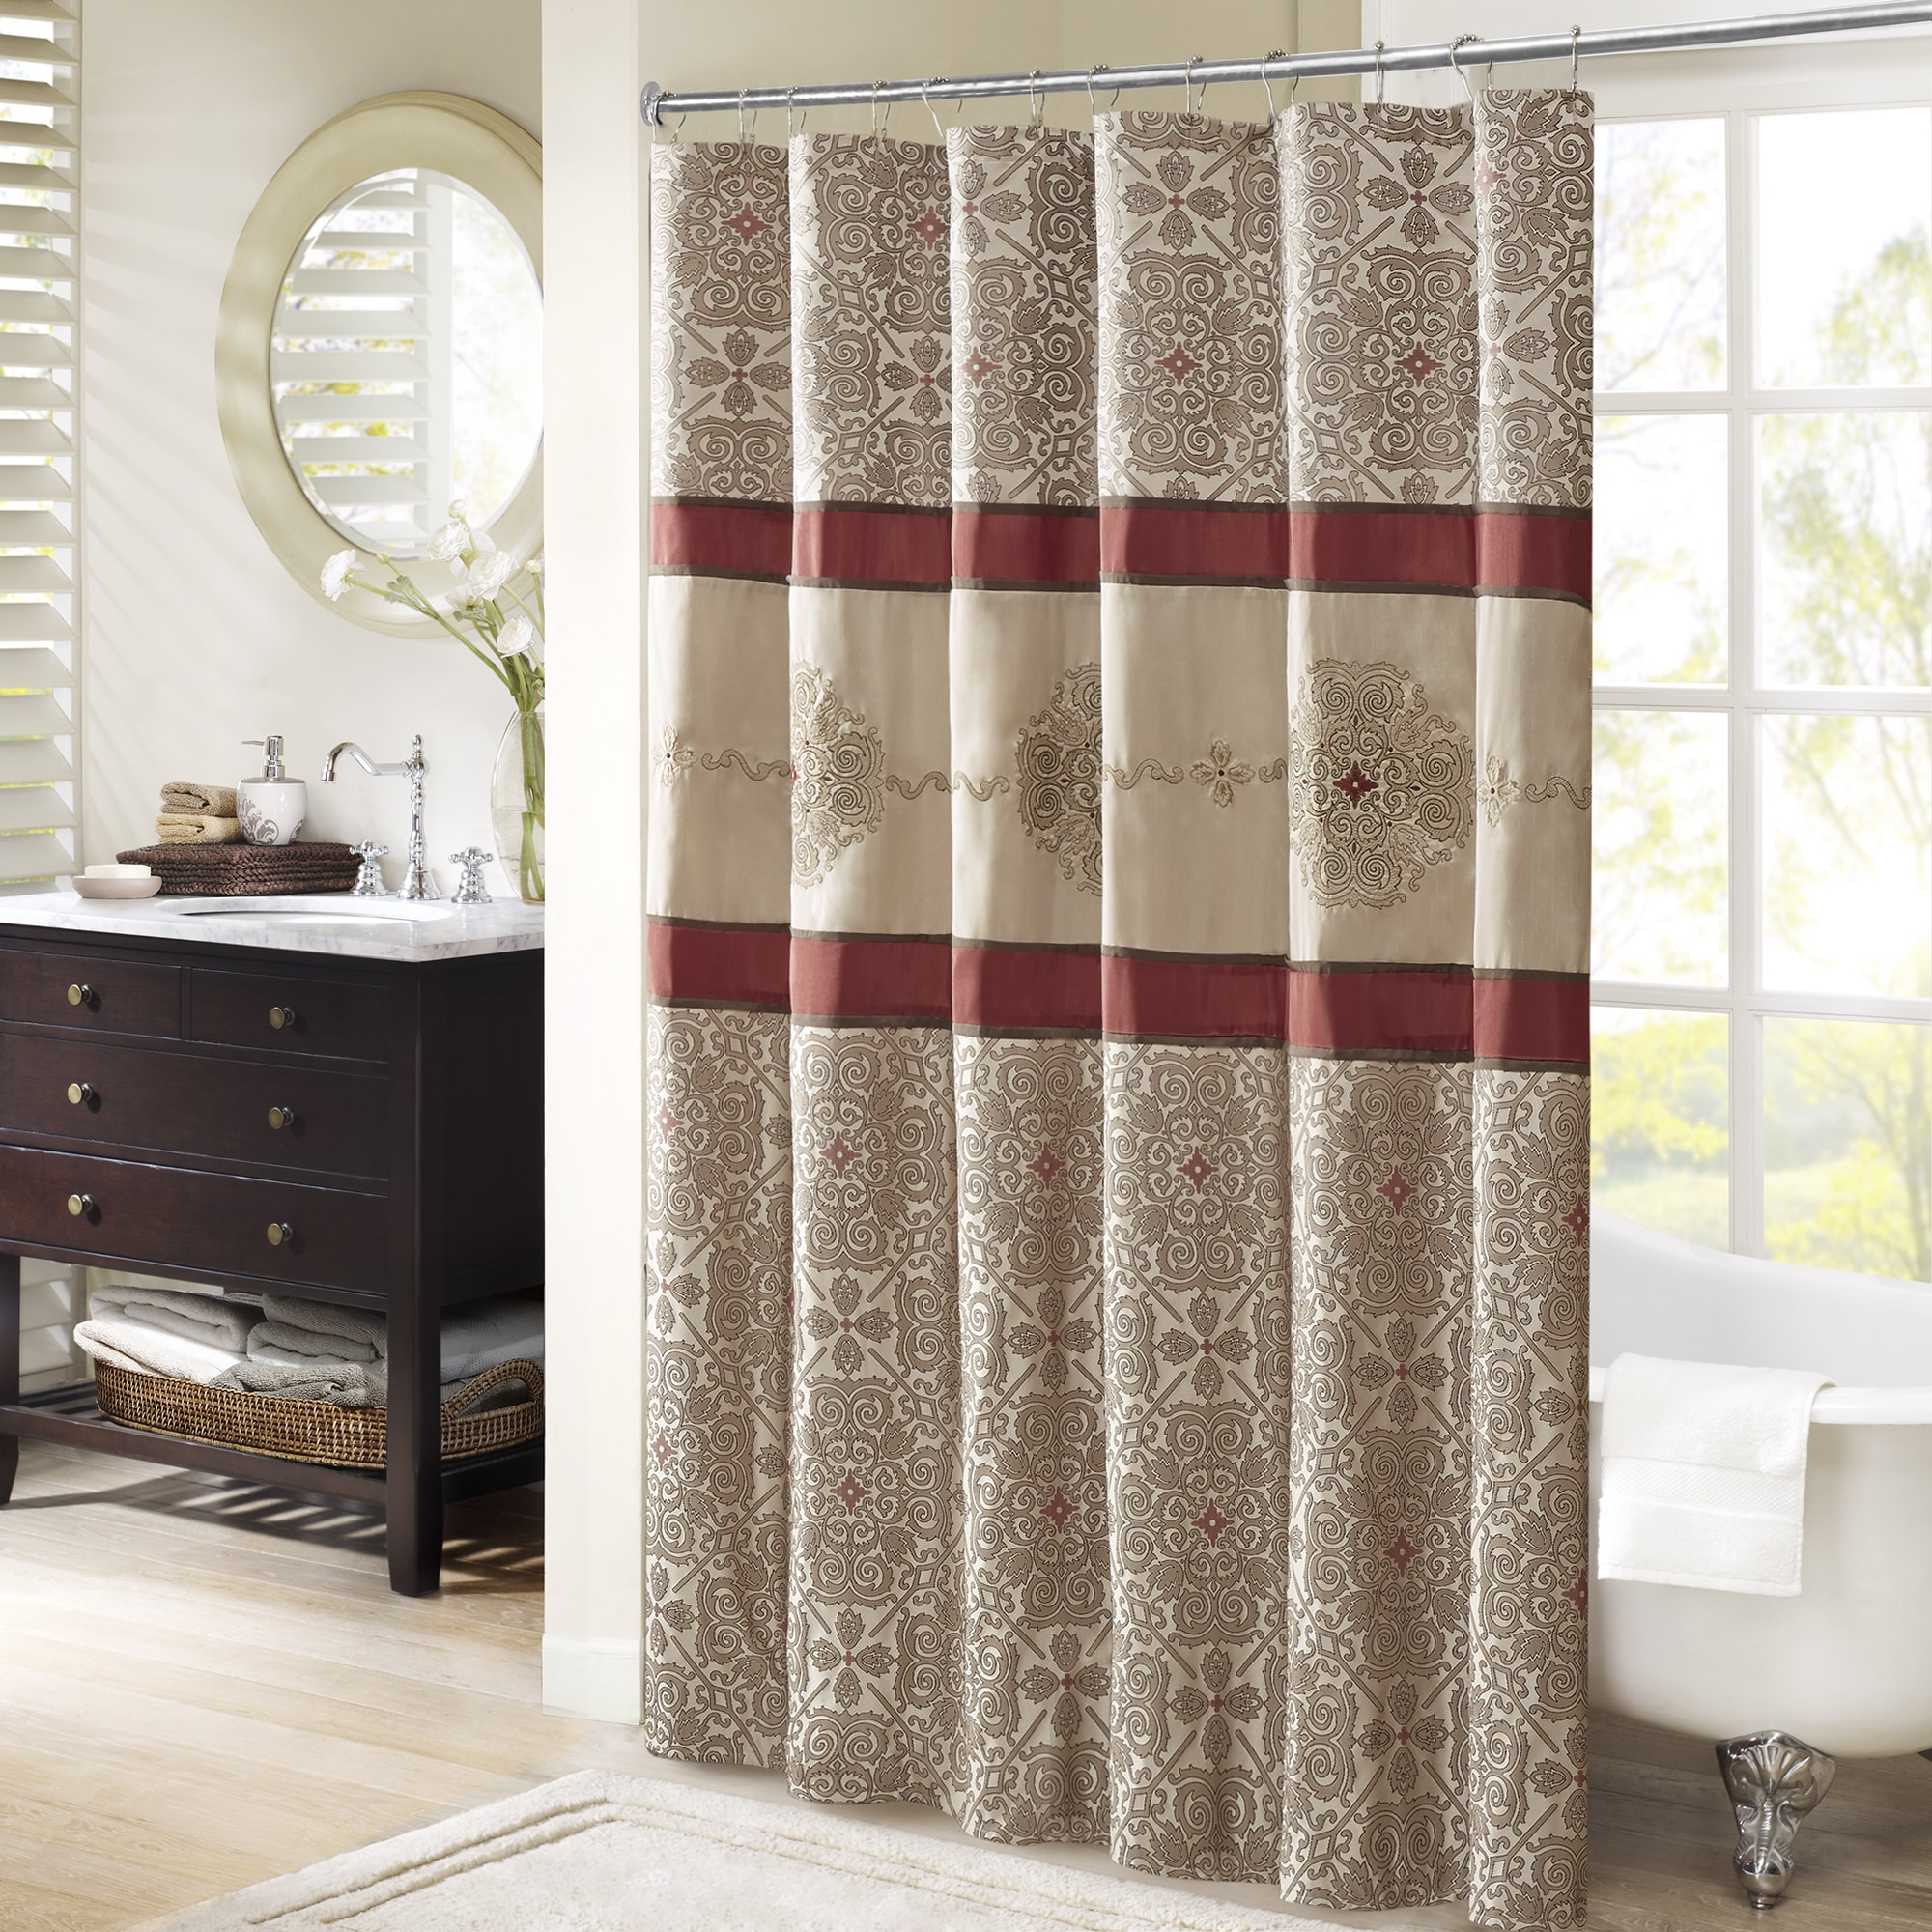 Shop Madison Park Blaine Red Jacquard Shower Curtain With Embroidery